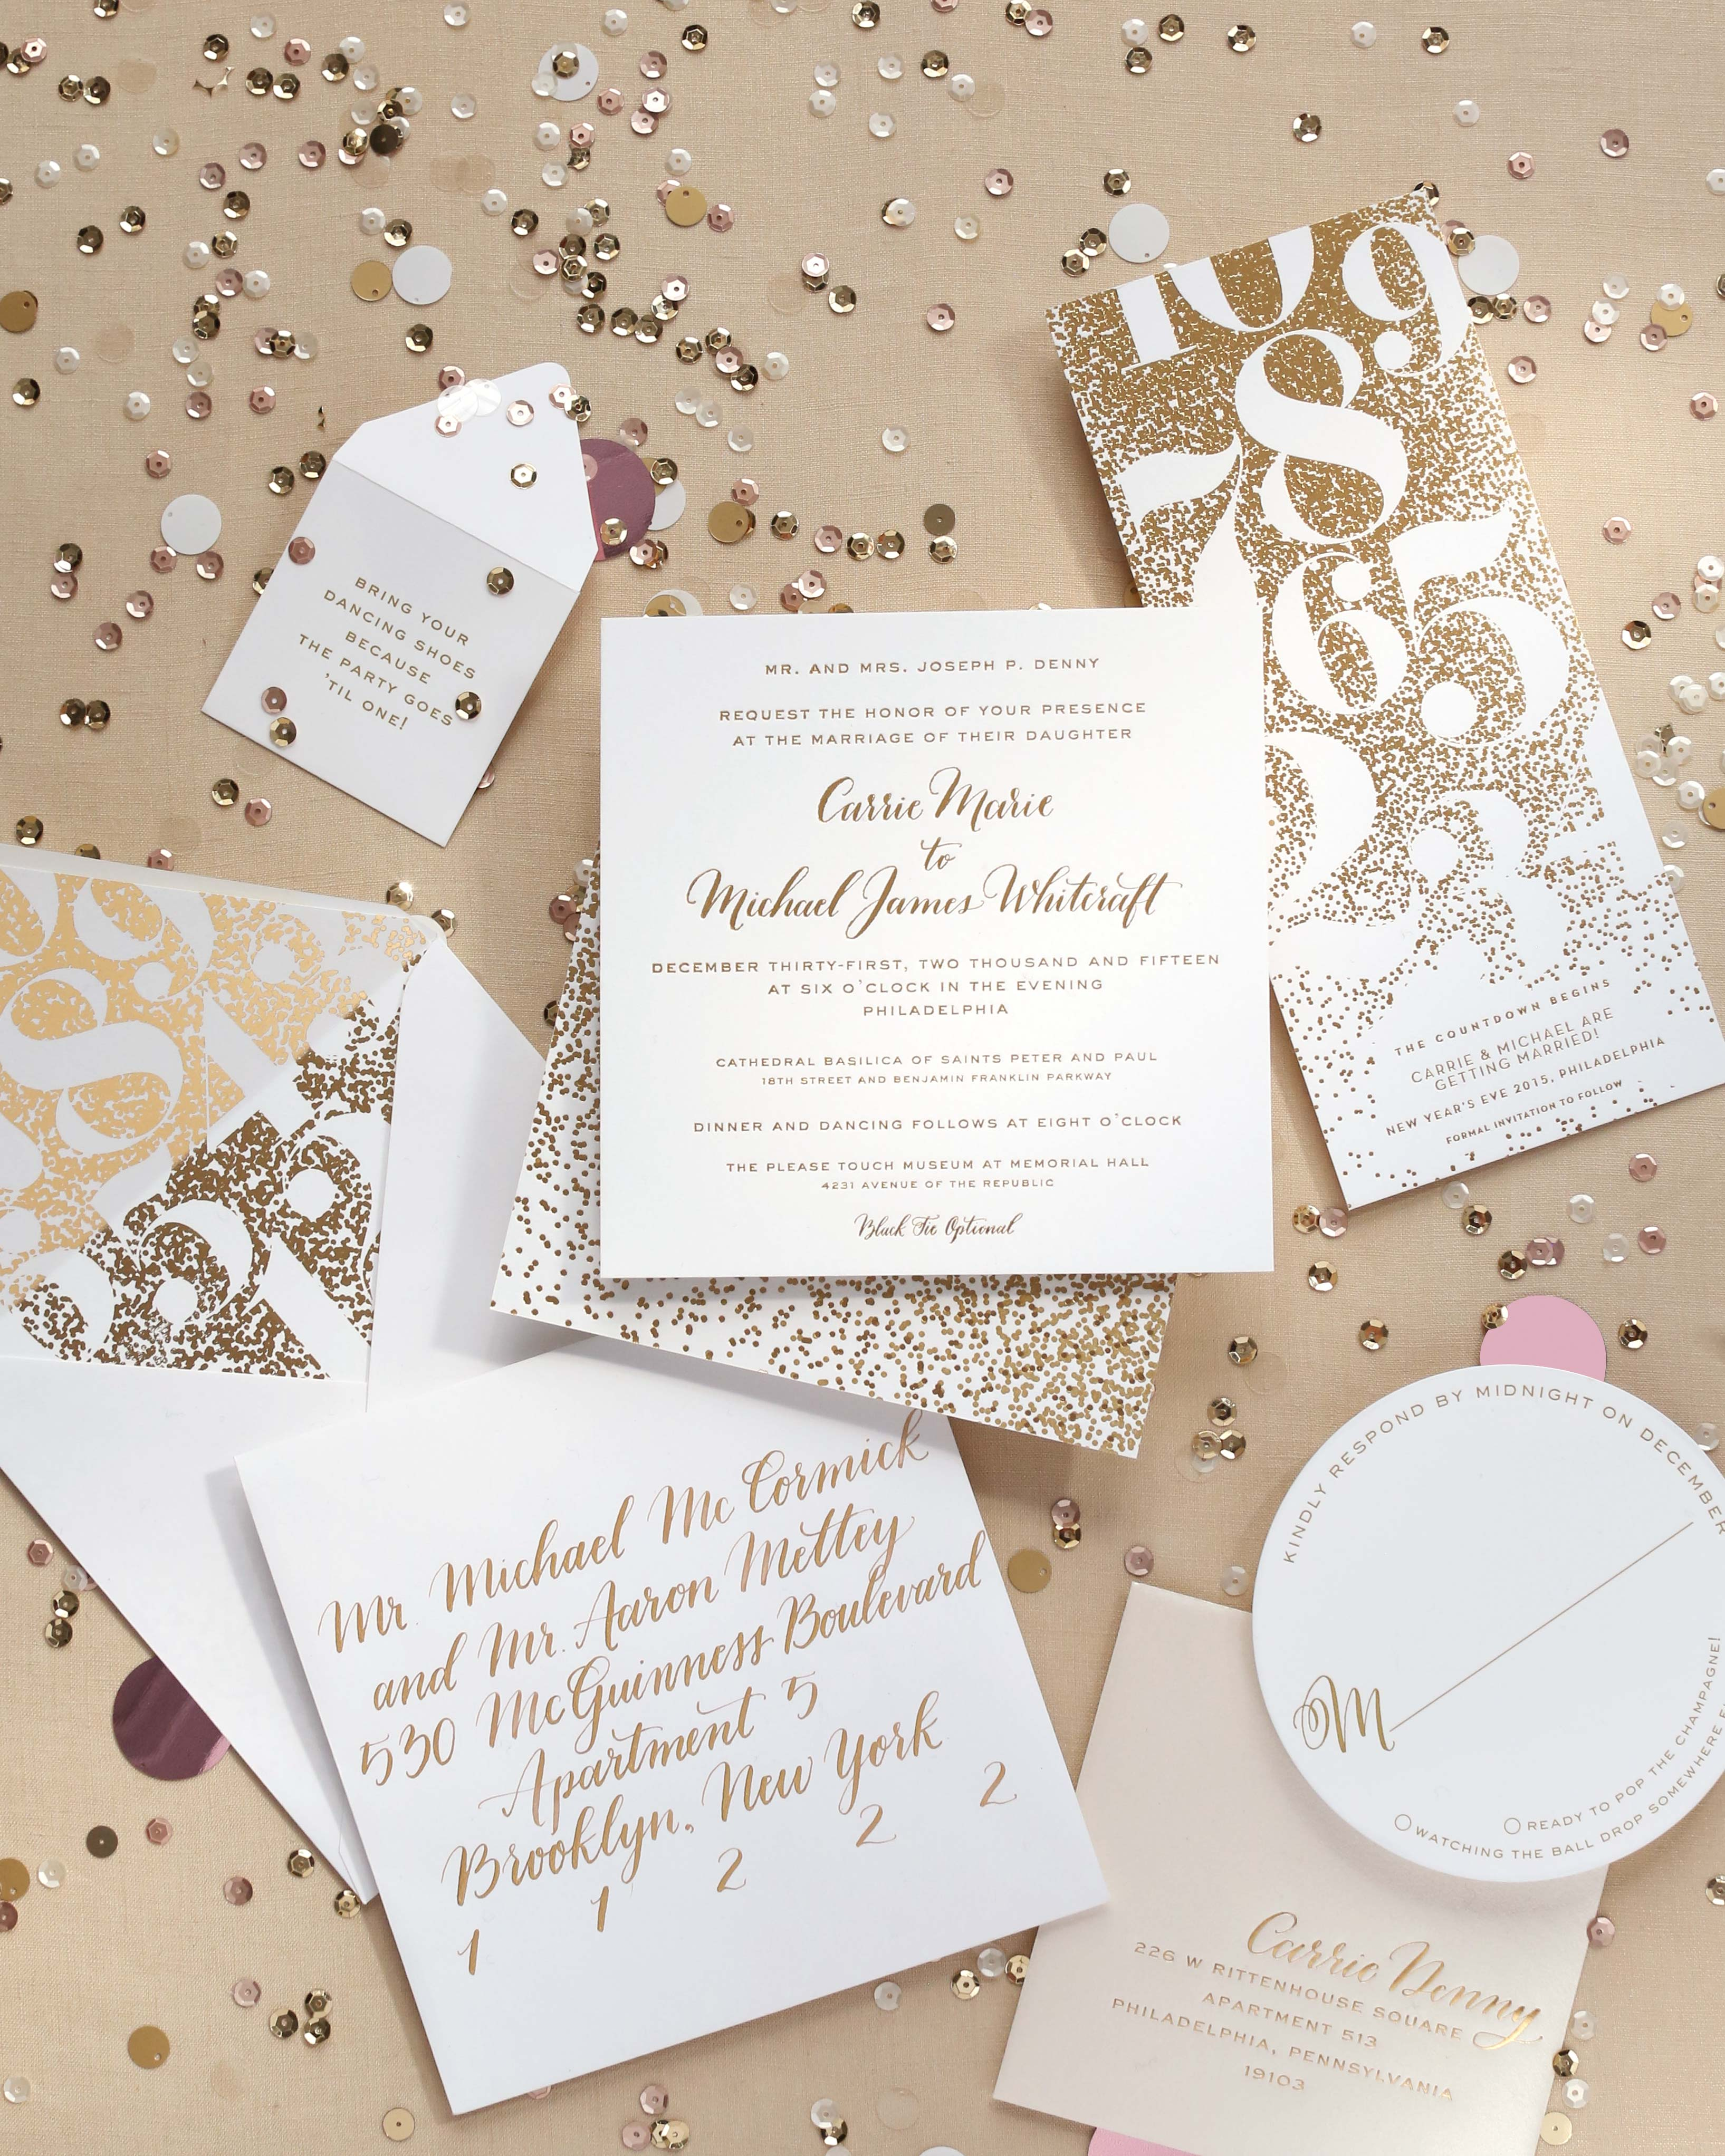 A Metallic Stationery Suite